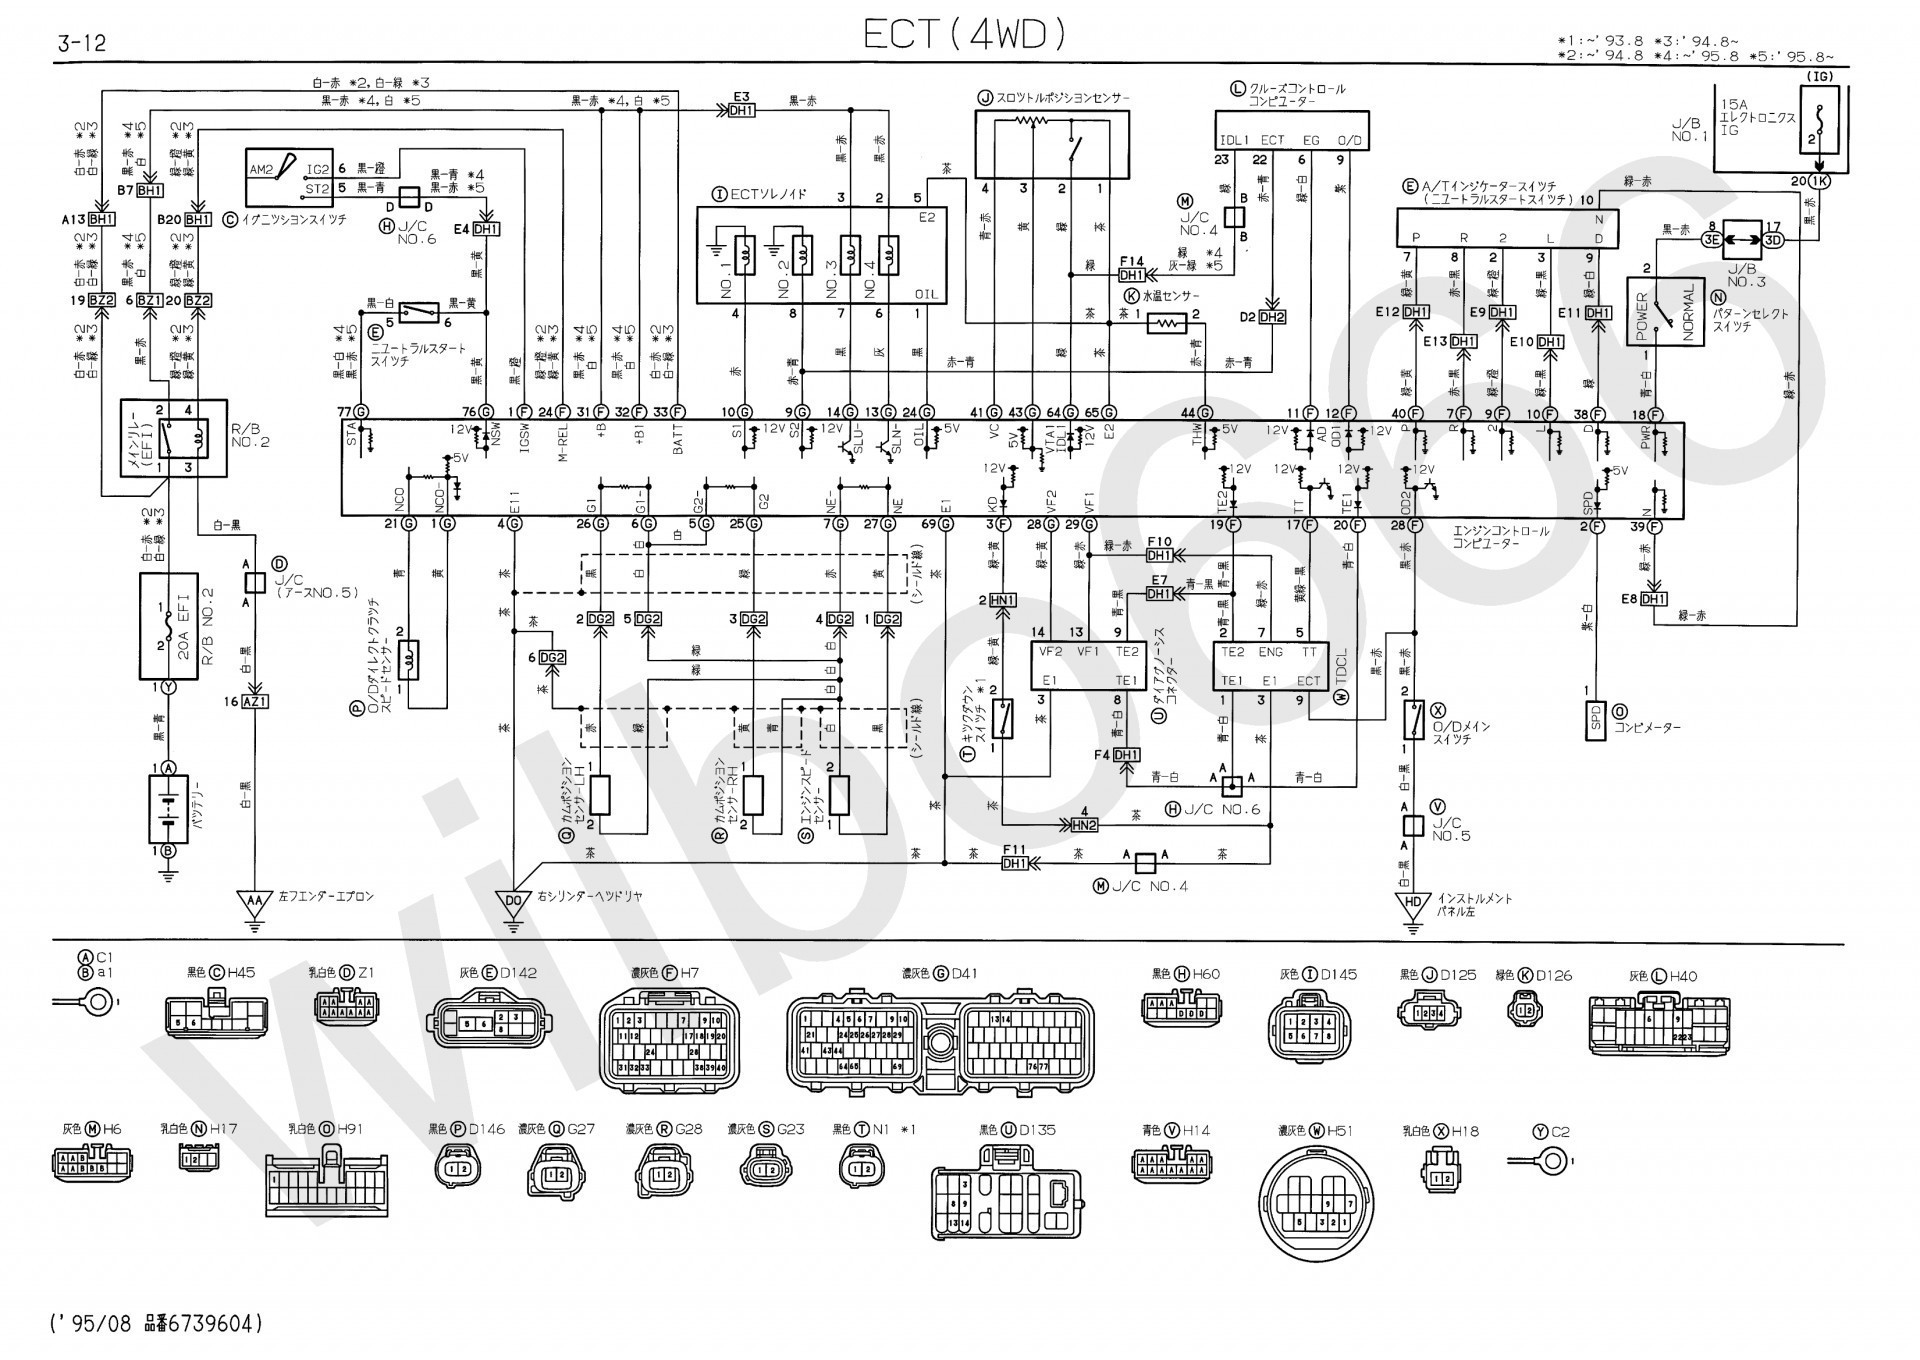 Kohler Engine Wiring Diagram Olympian Generator Wiring ... on toyota alternator wiring diagram, motorhome battery wiring diagram, olympian generator fuel tank, rv wiring diagram, 12 lead 3 phase motor wiring diagram, manufactured home electrical wiring diagram, wilson alternator wiring diagram, olympian generator control panel, rv charger wire diagram, olympian generator sets, olympian generator wiring model gep18-2, genset wiring diagram, portable generators repair wiring diagram, heater wiring diagram, olympian generator drawings, power converter charger installation diagram,